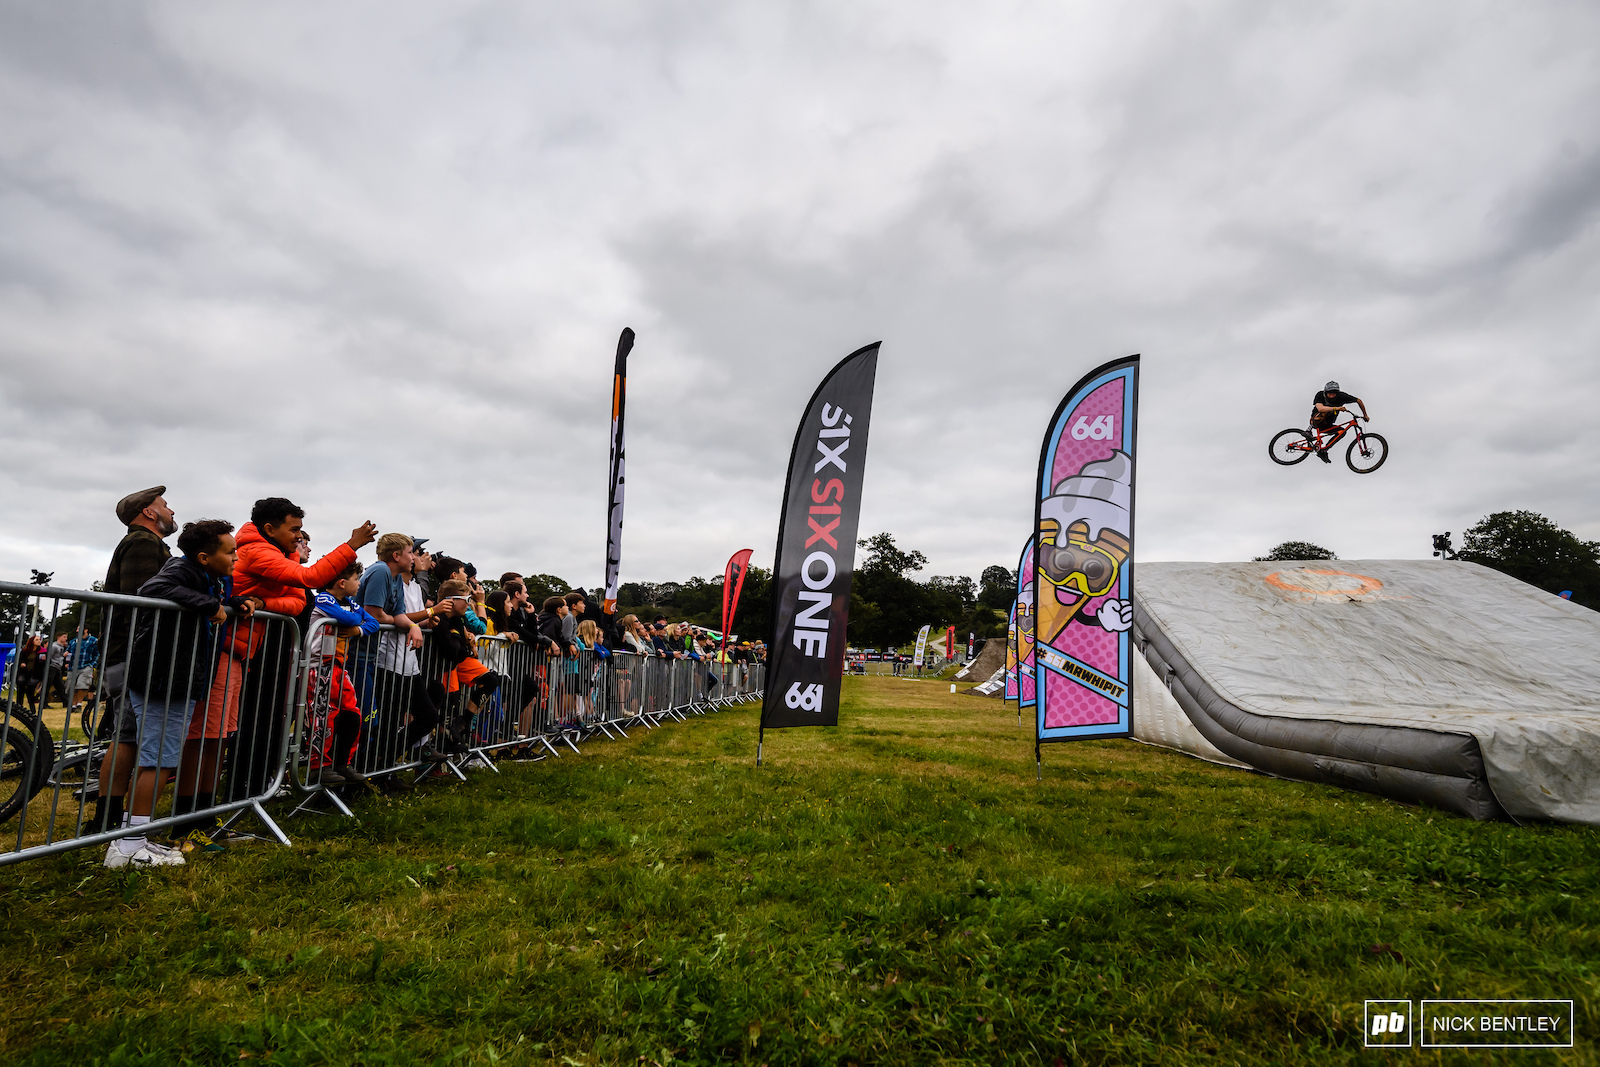 Kids were keen to see just how sideways the riders could get